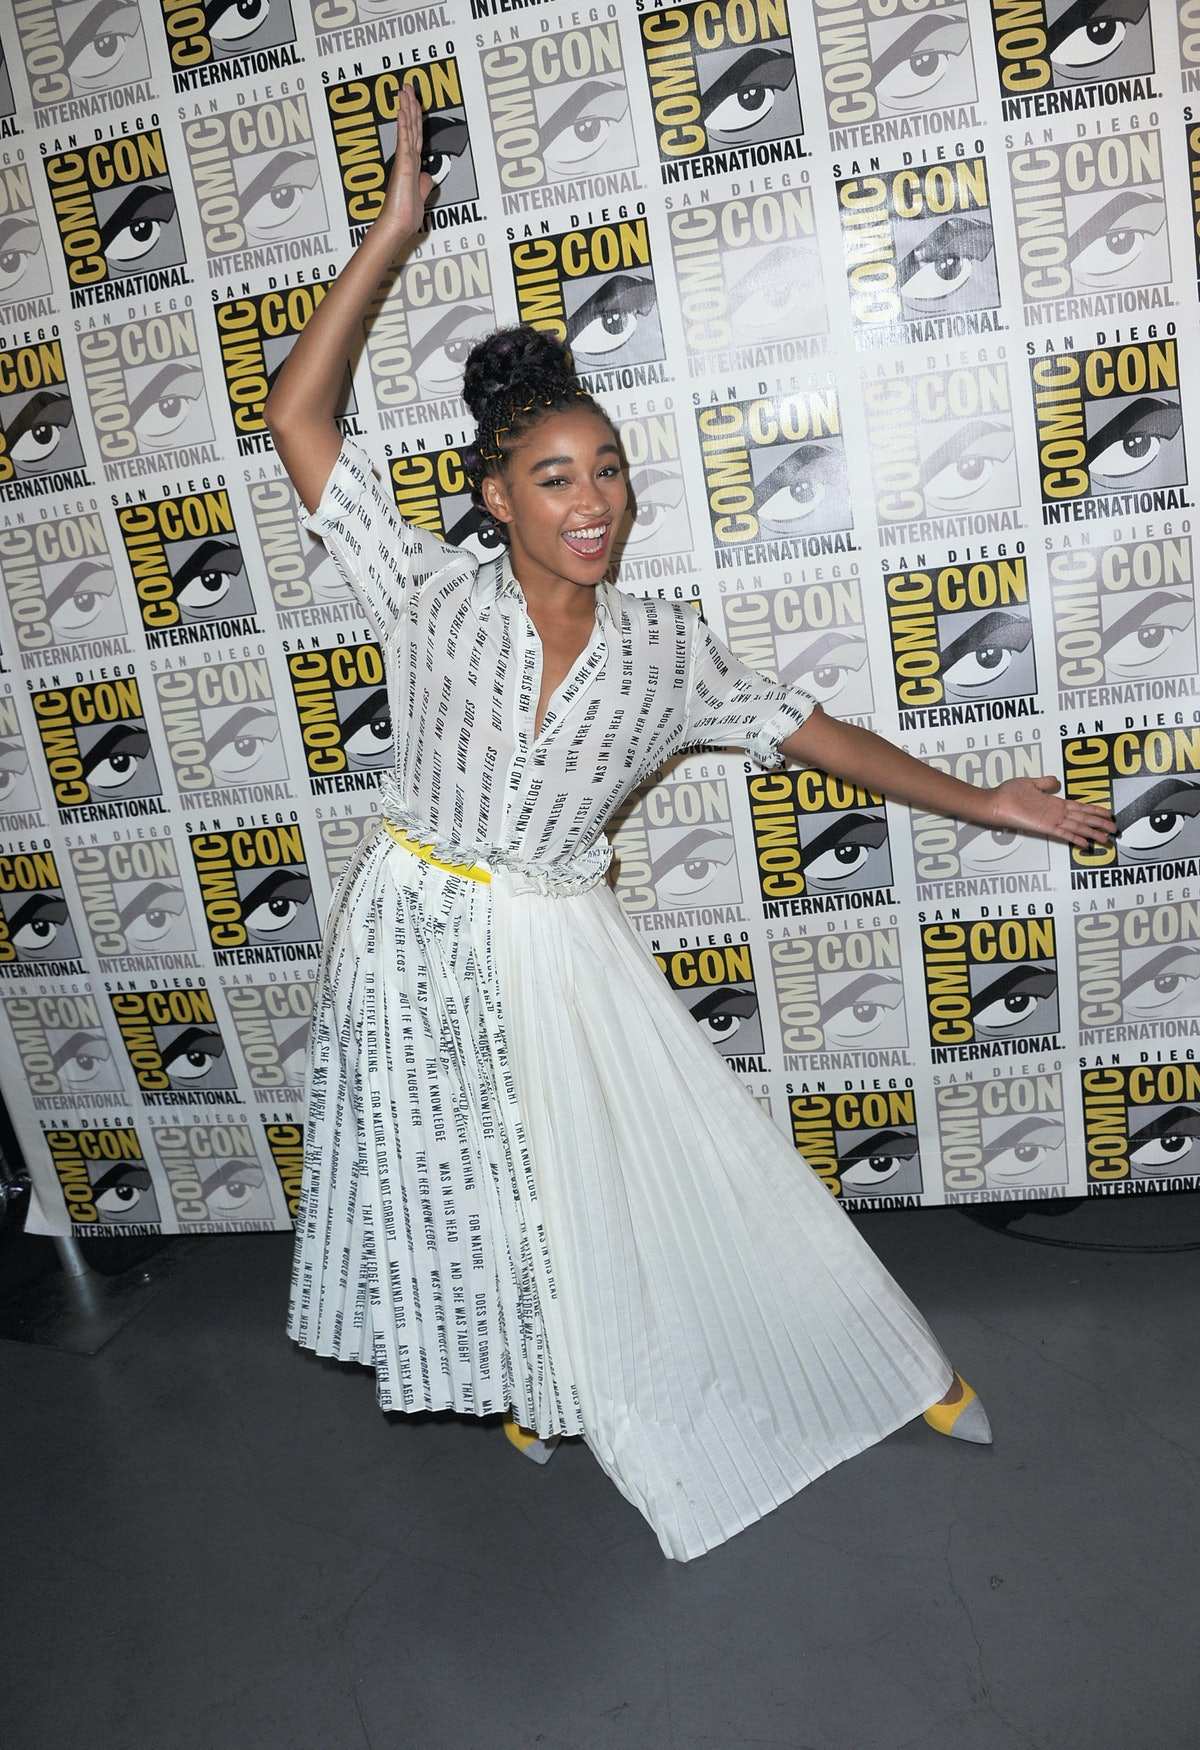 2018 Comic-Con International - General Atmosphere And Cosplay